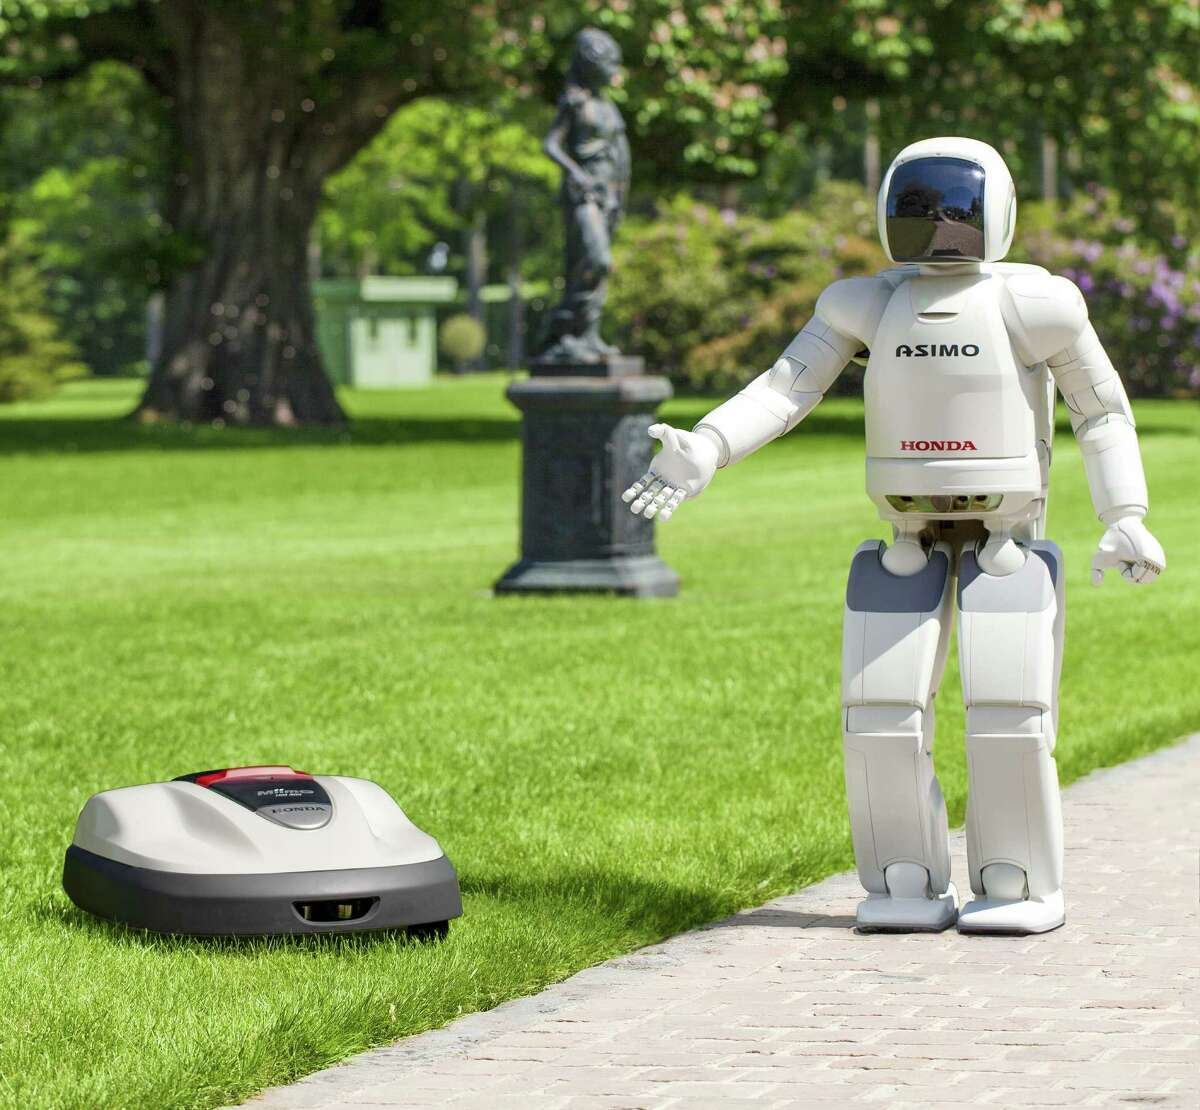 Robotic helpers like the Roomba may be equipped to disinfect their surroundings and guard against the transmission of illness as the roll around.